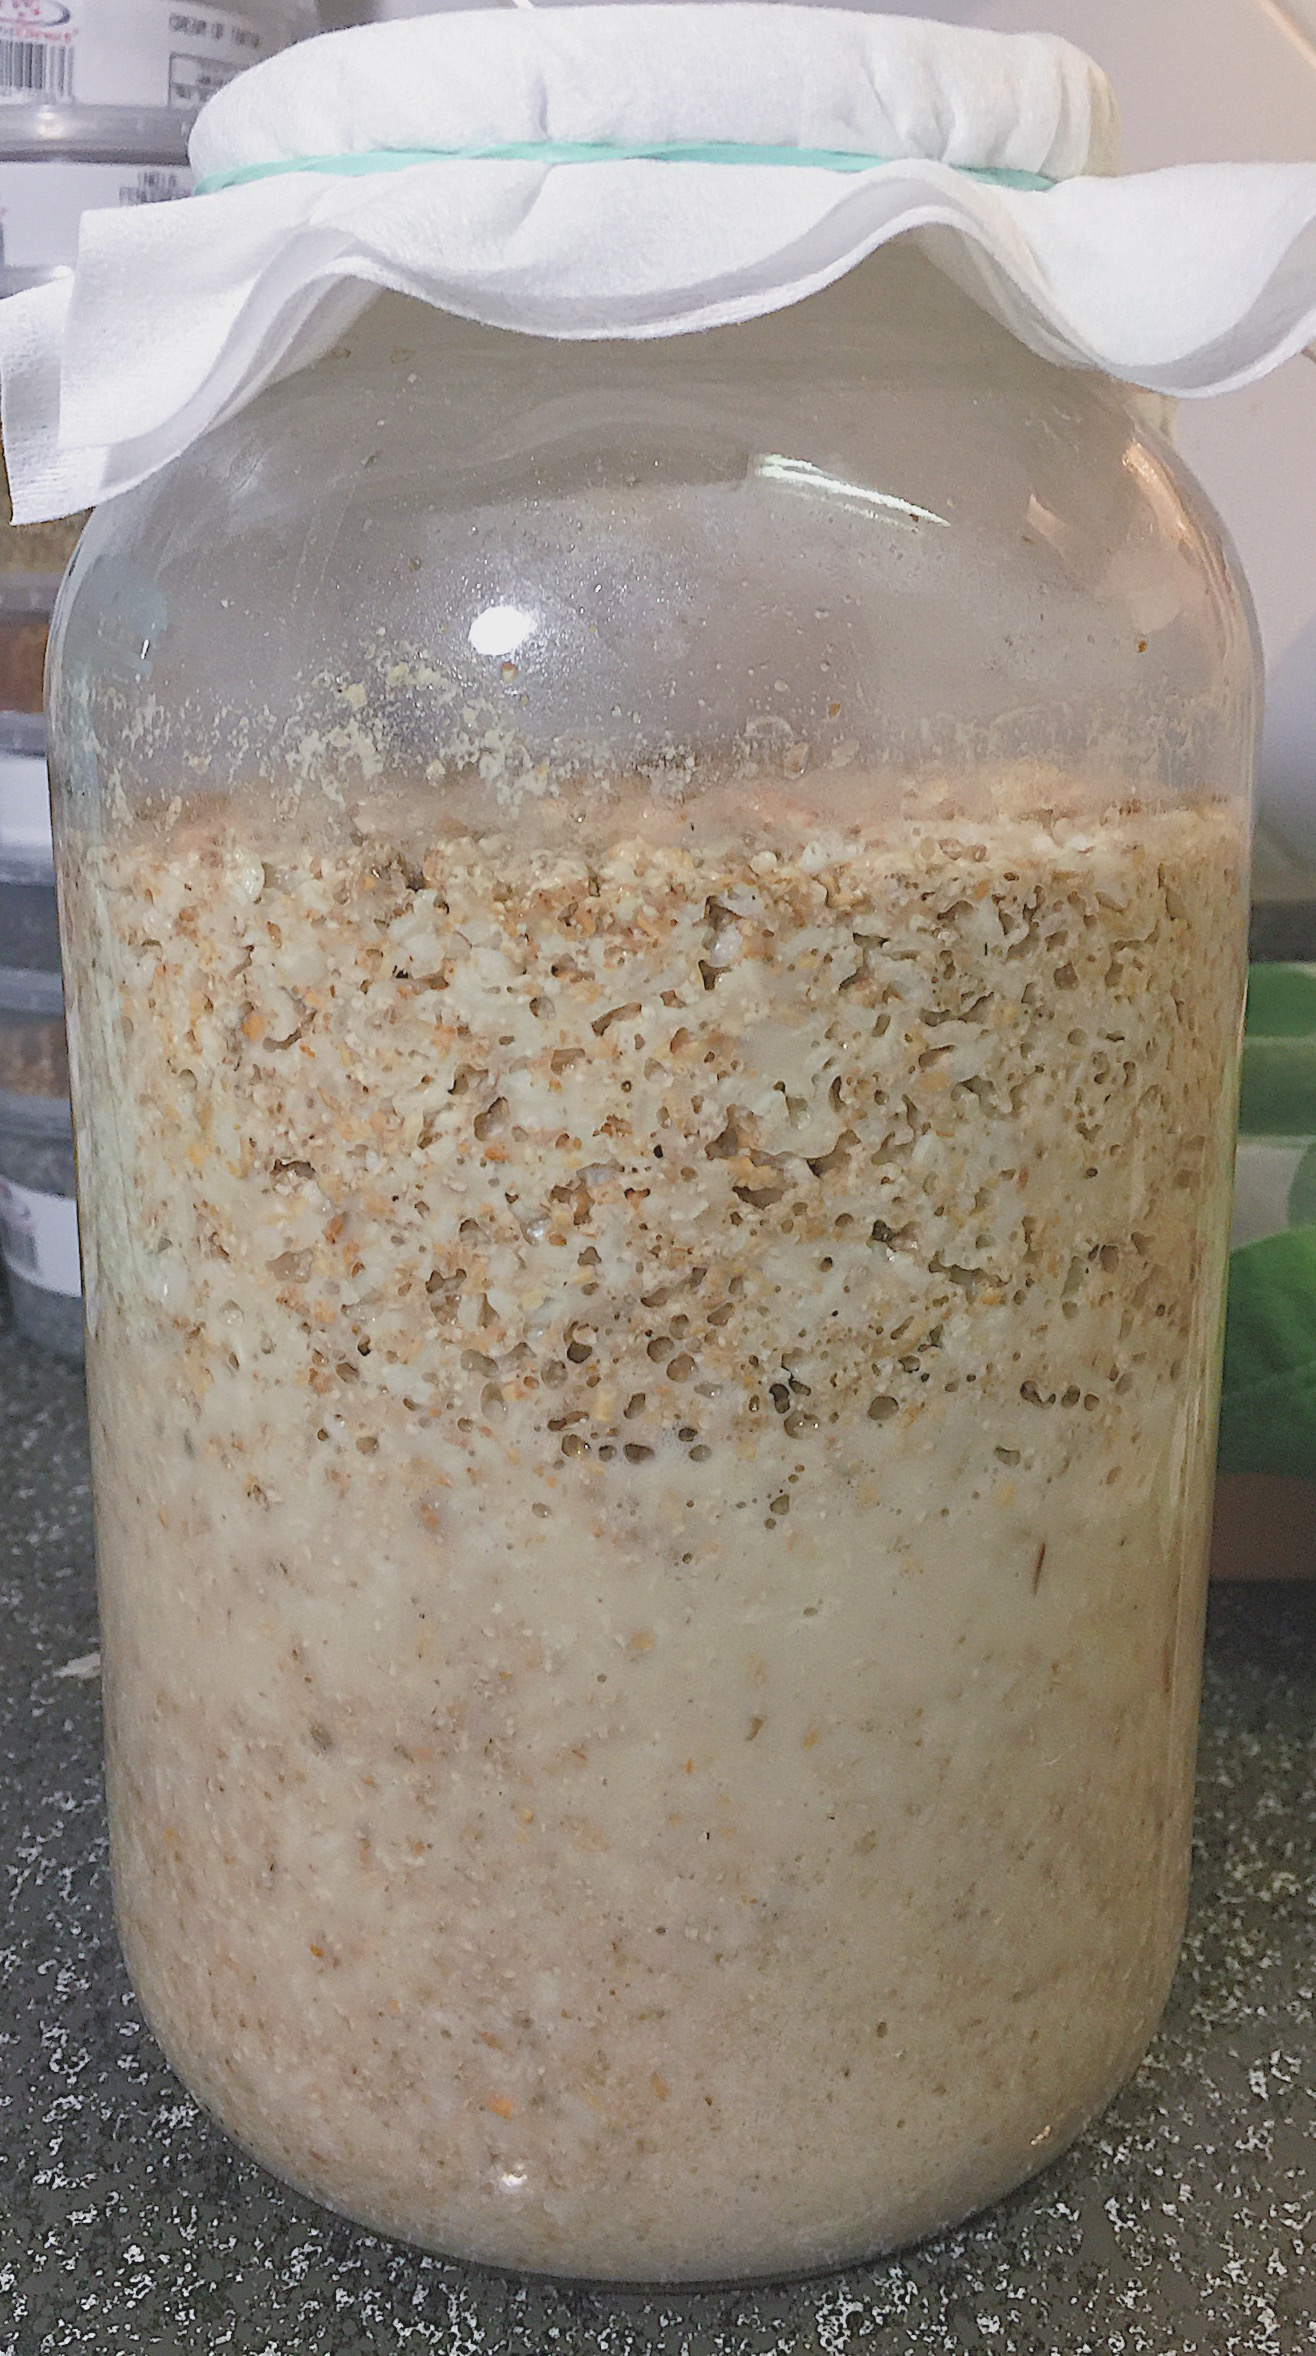 Magic in the works. - Makgeolli in the early stages is very active and fermentation should be apparent.